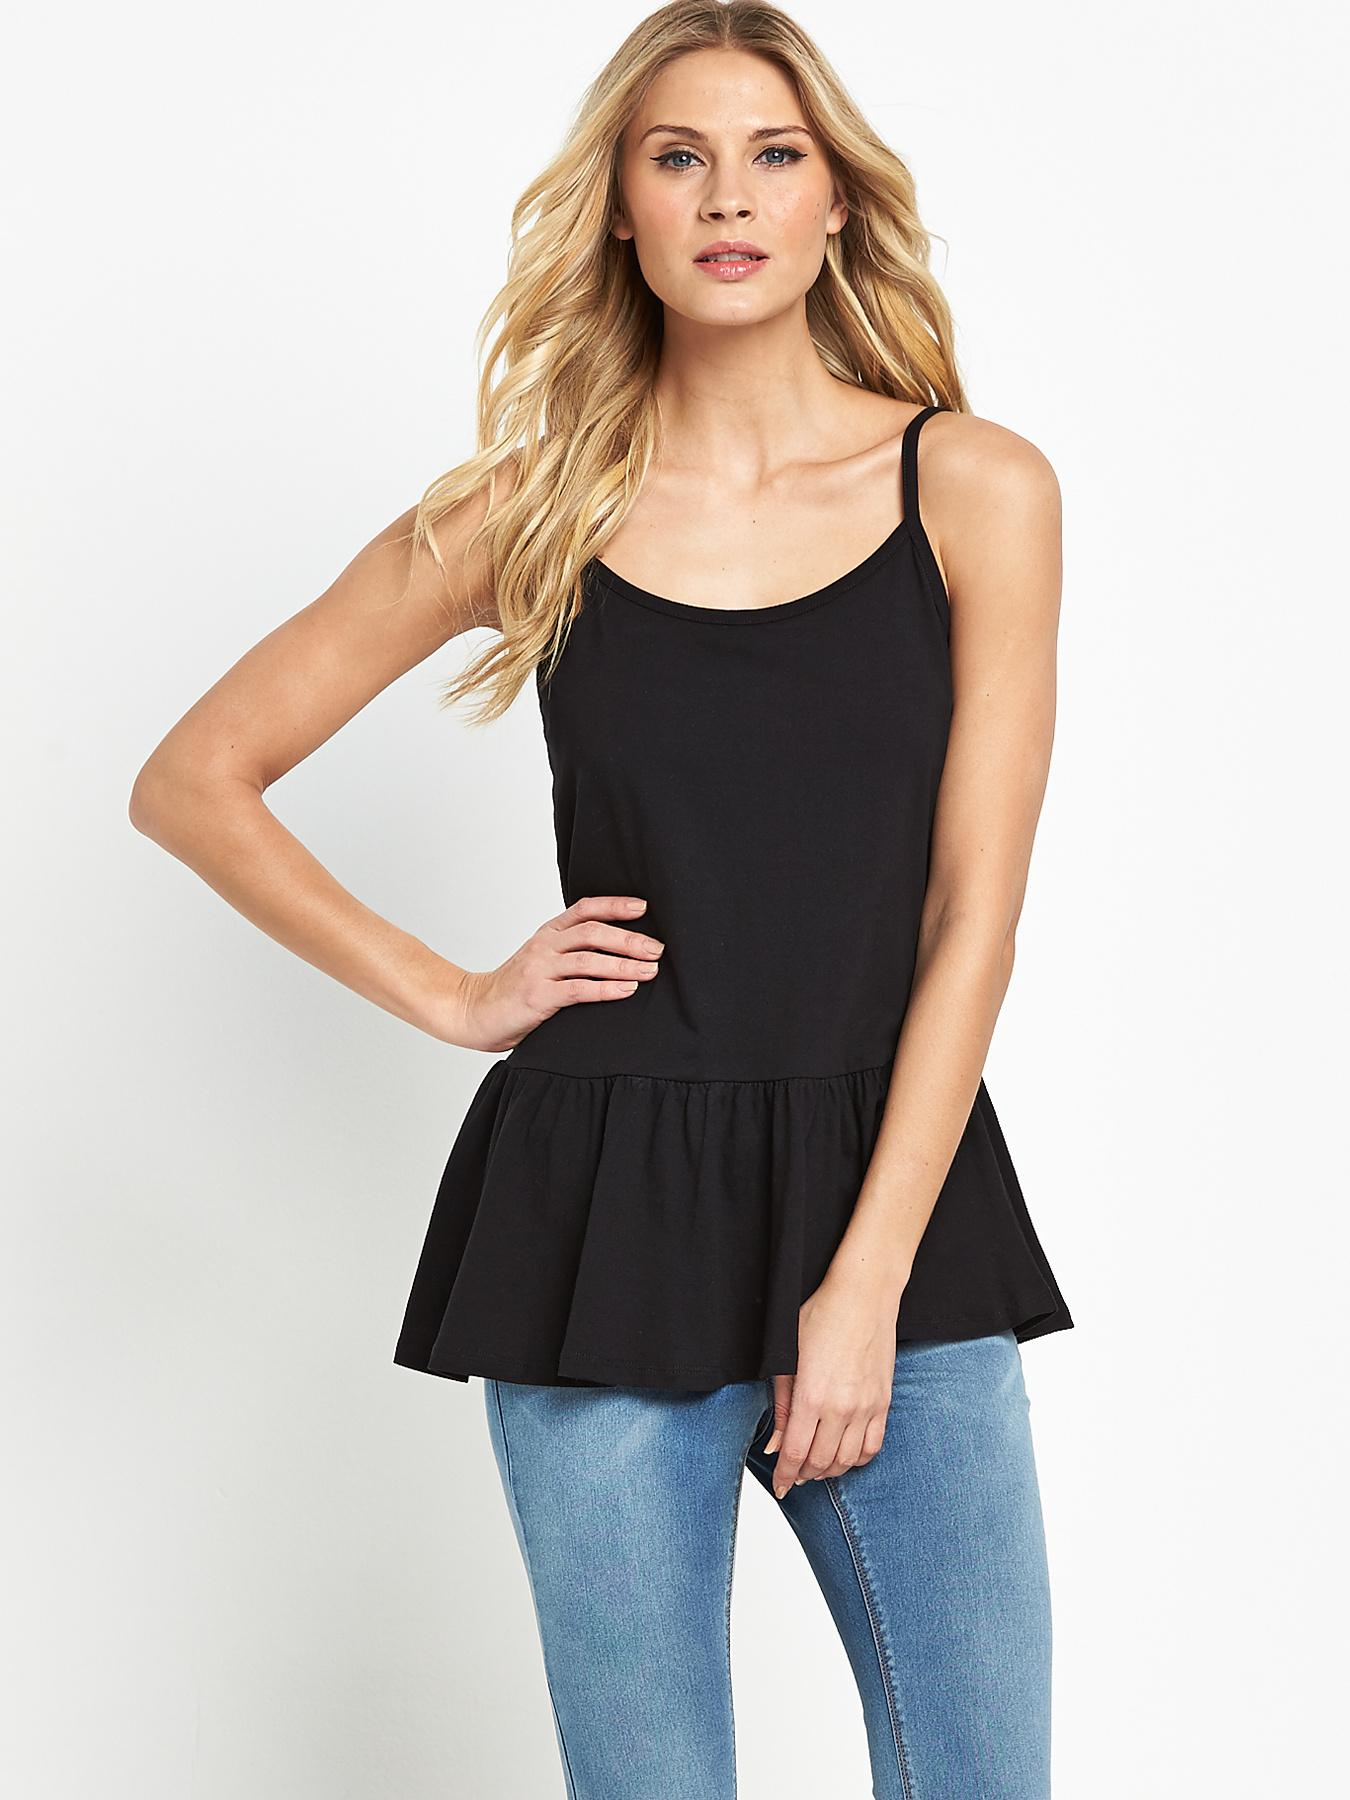 Peplum Cami Top, Black,Neon,White at Littlewoods